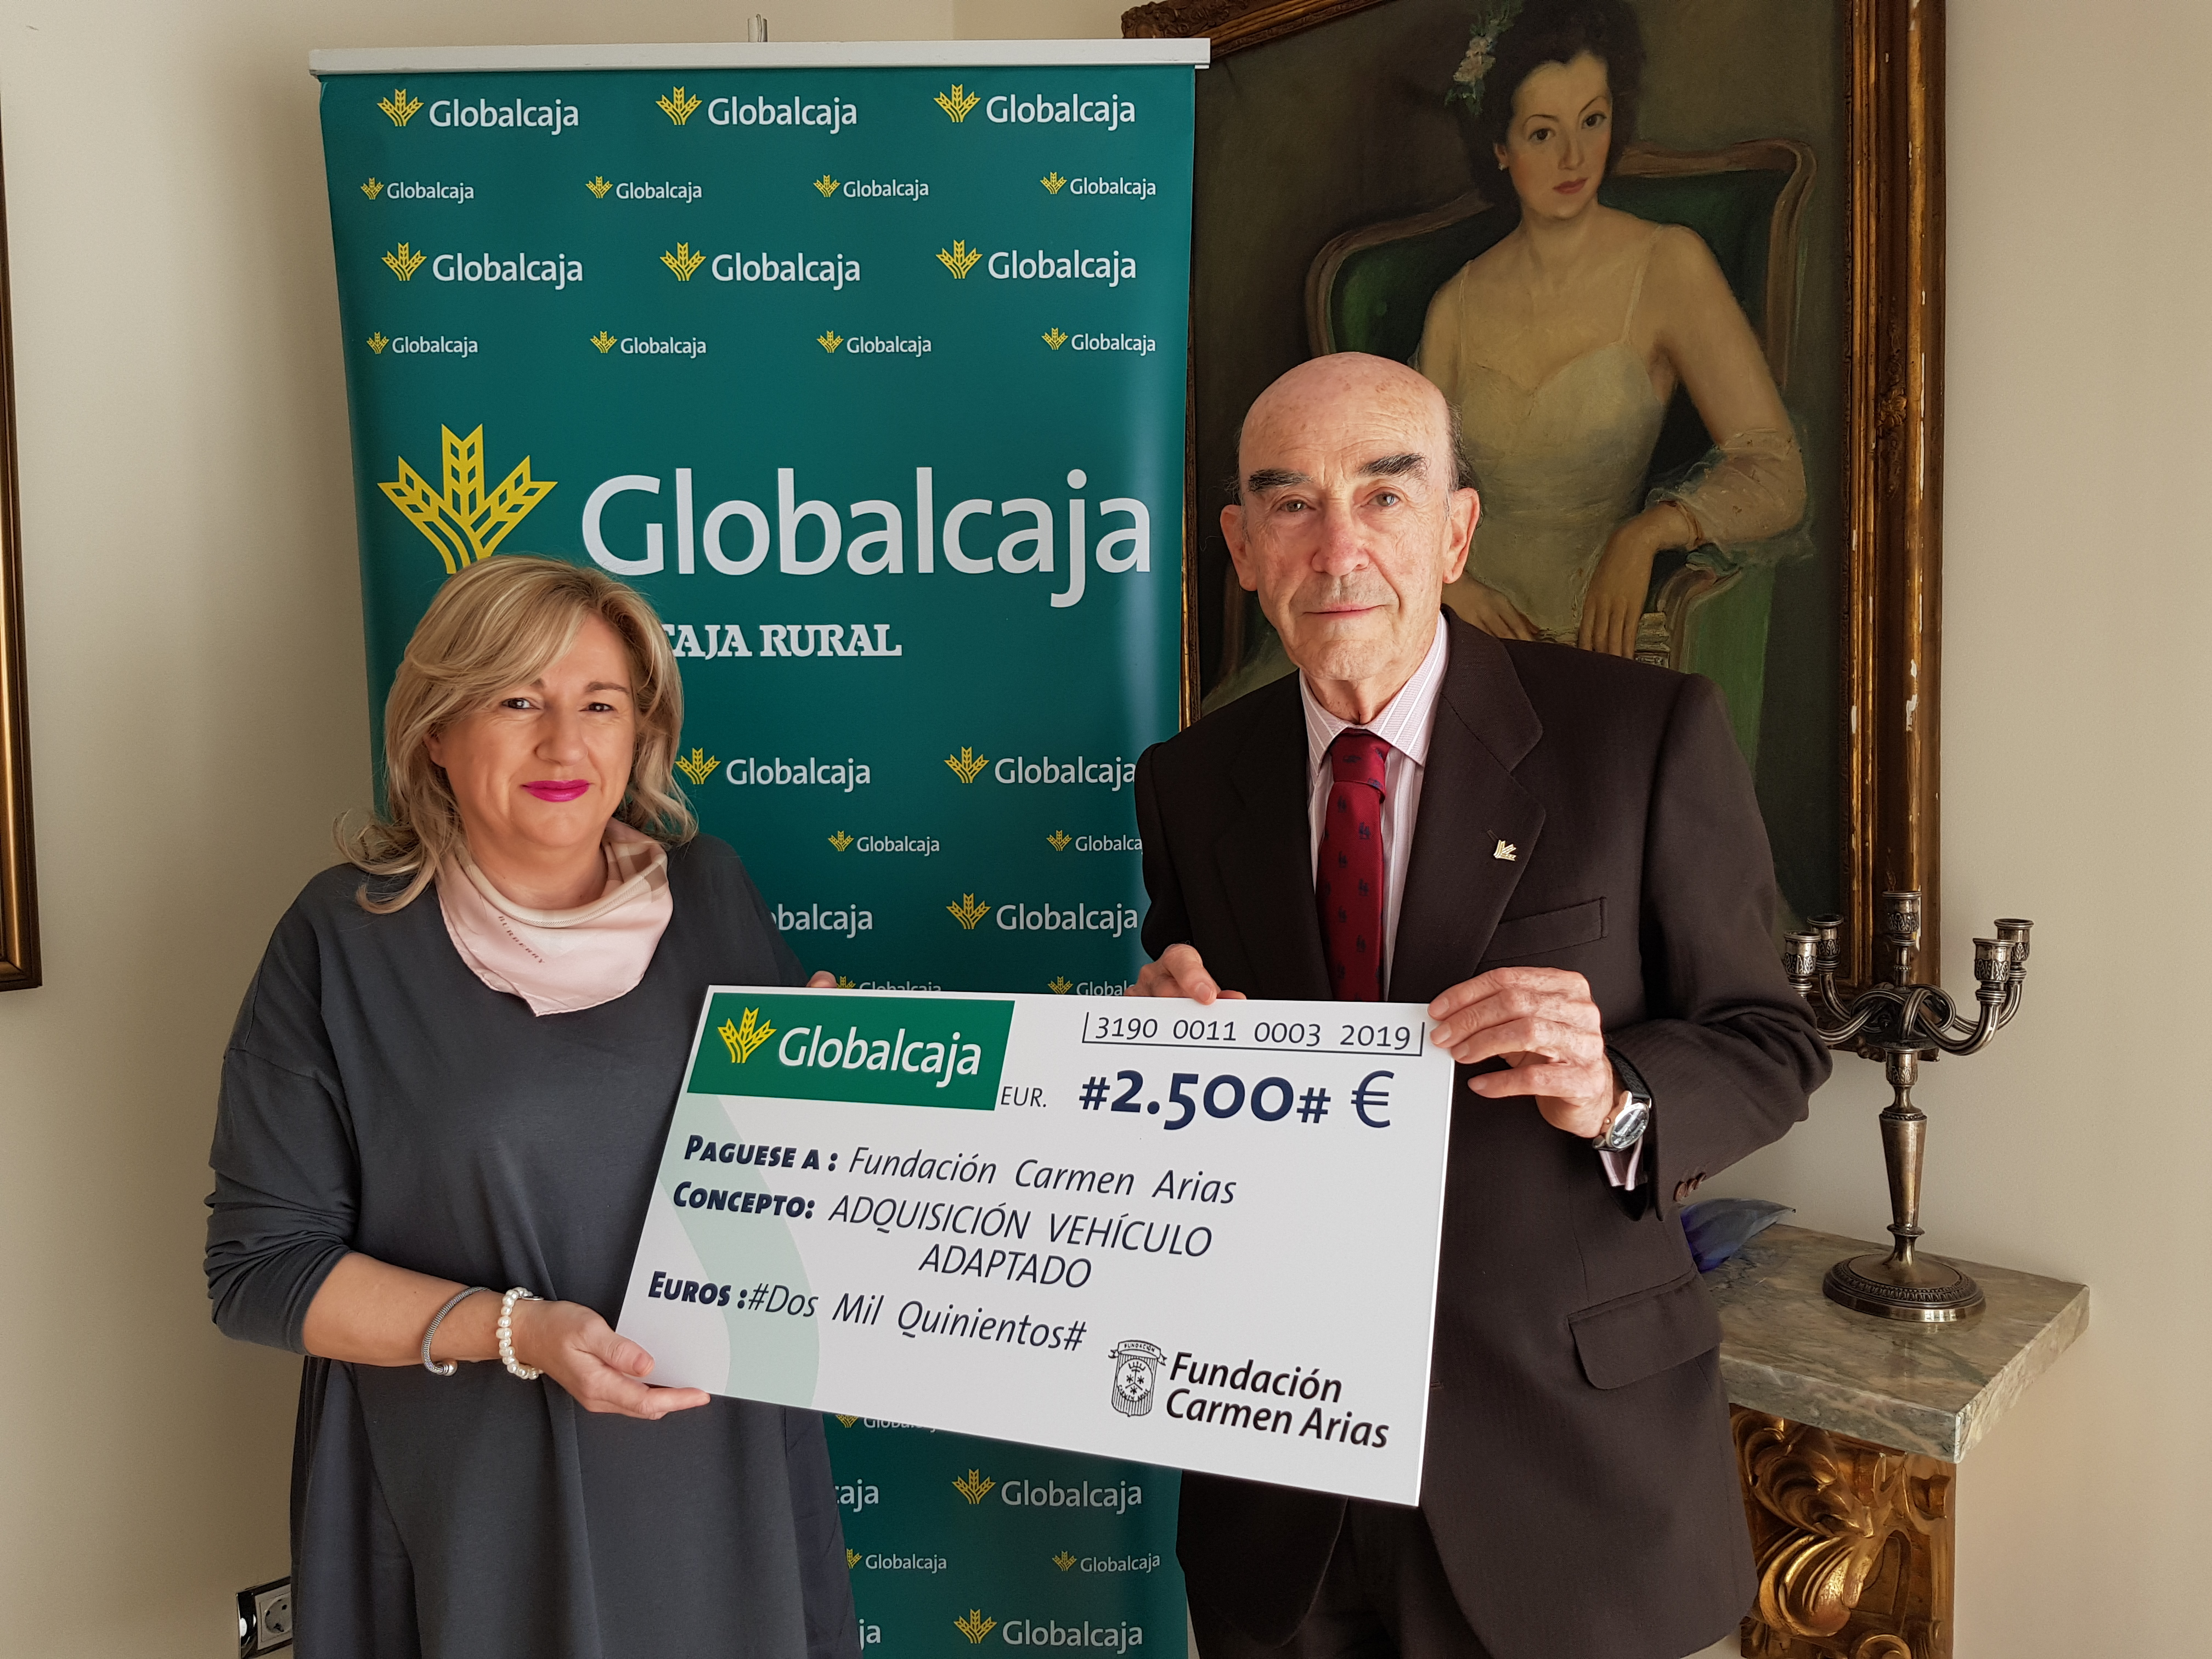 https://blog.globalcaja.es/wp-content/uploads/2019/04/Fundacion-Carmen-Arias.jpg